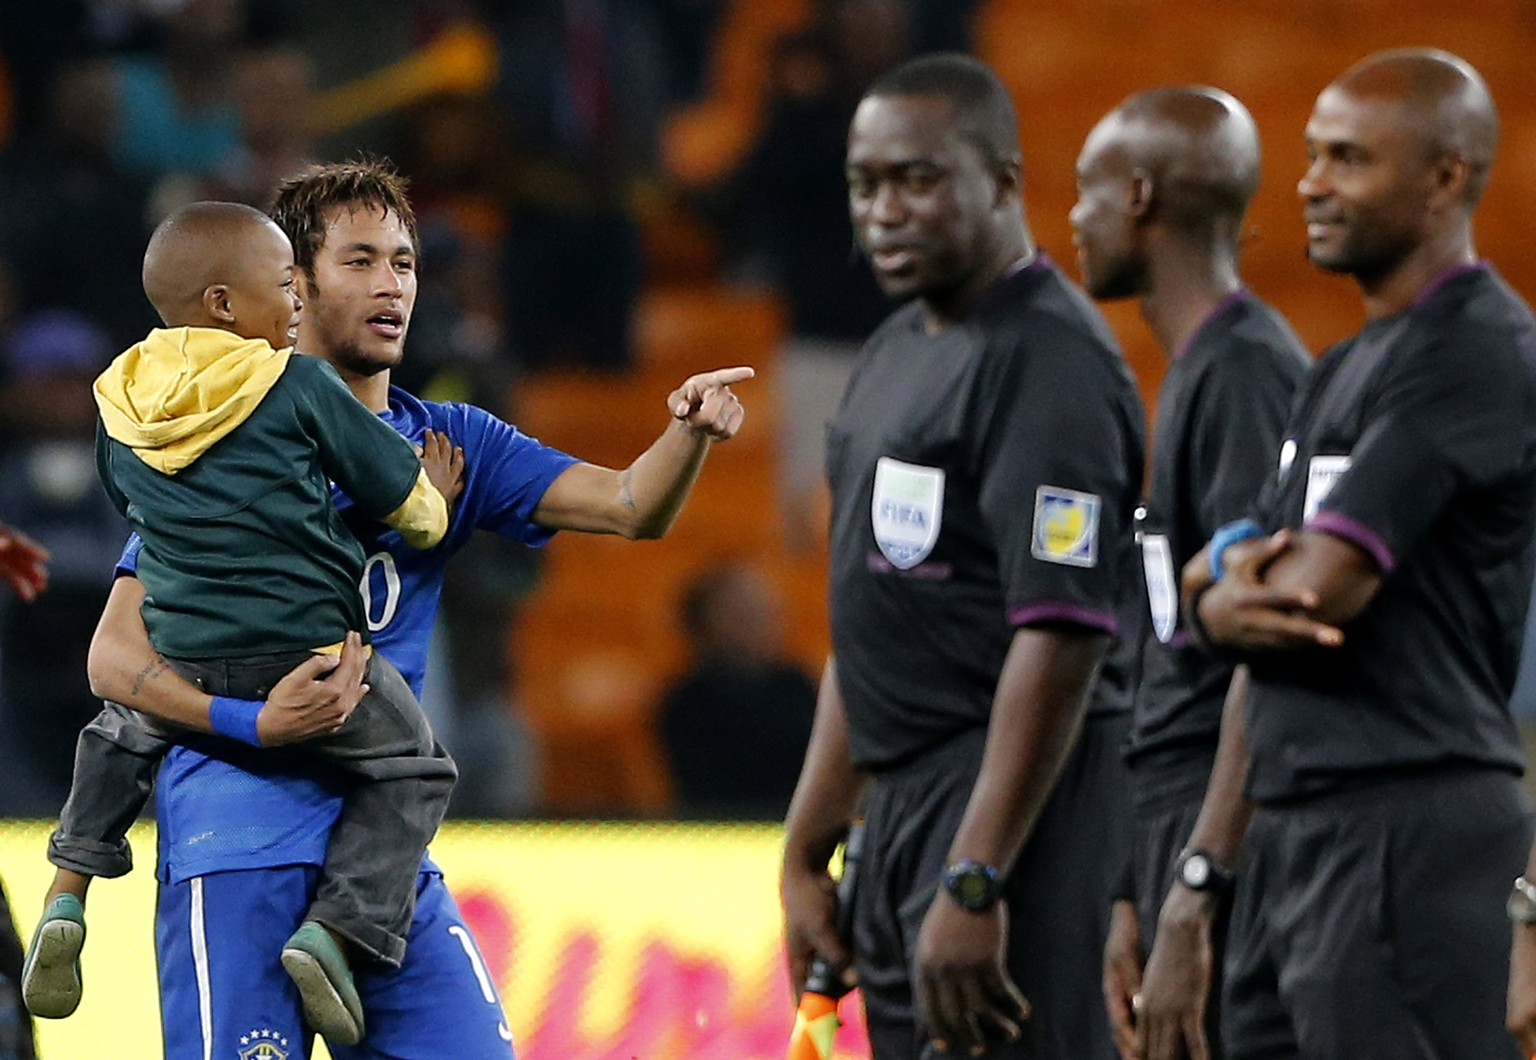 Brazil's Neymar carries a young soccer fan at the end of their international friendly soccer match against South Africa at the First National Bank (FNB) Stadium, also known as Soccer City, Johannesburg March 5 2014. REUTERS/Siphiwe Sibeko (SOUTH AFRICA - Tags: SPORT SOCCER)